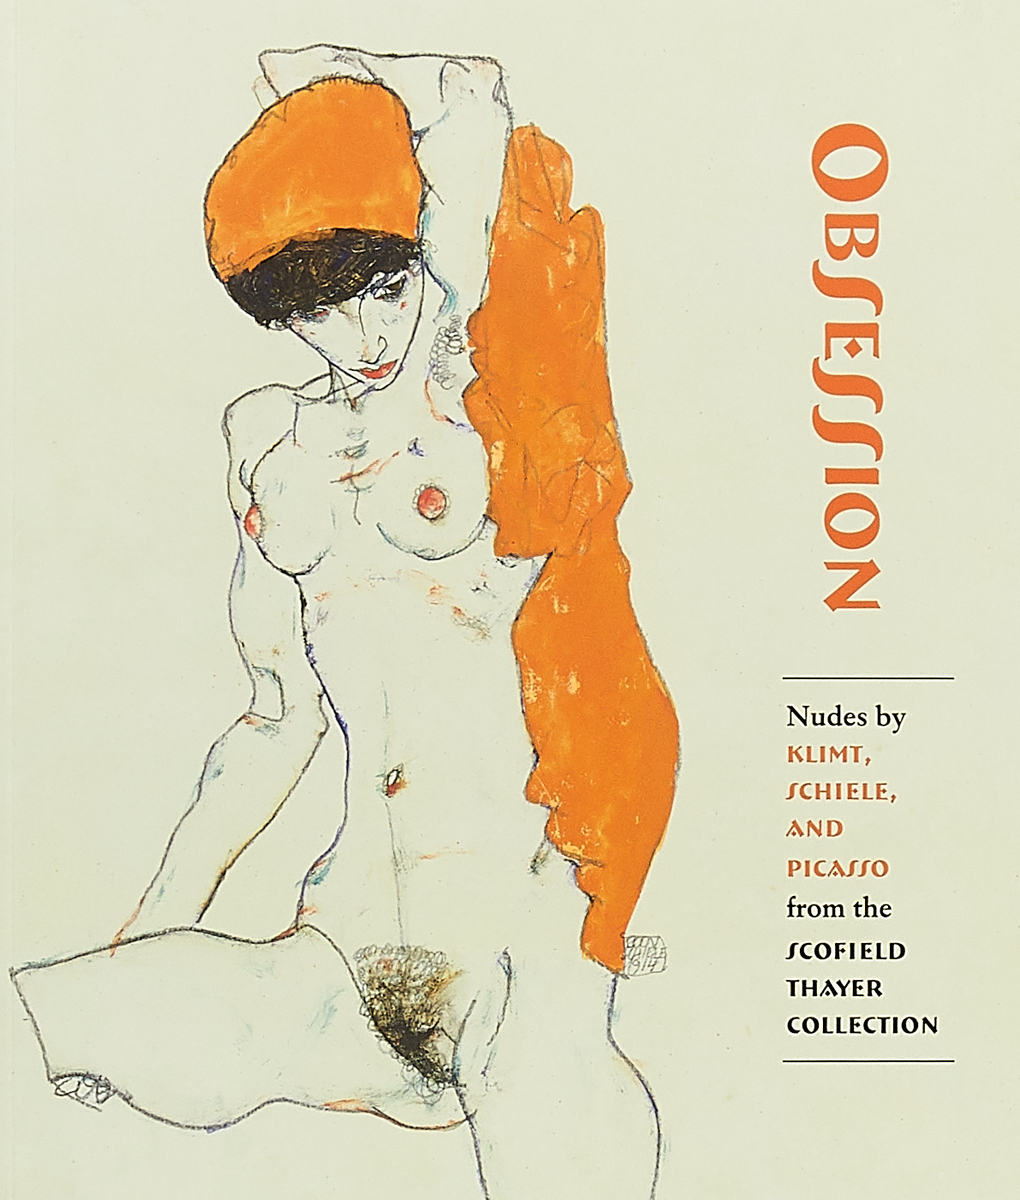 Obsession: Nudes by Klimt, Schiele, and Picasso from the Scofield Thayer Collection schiele